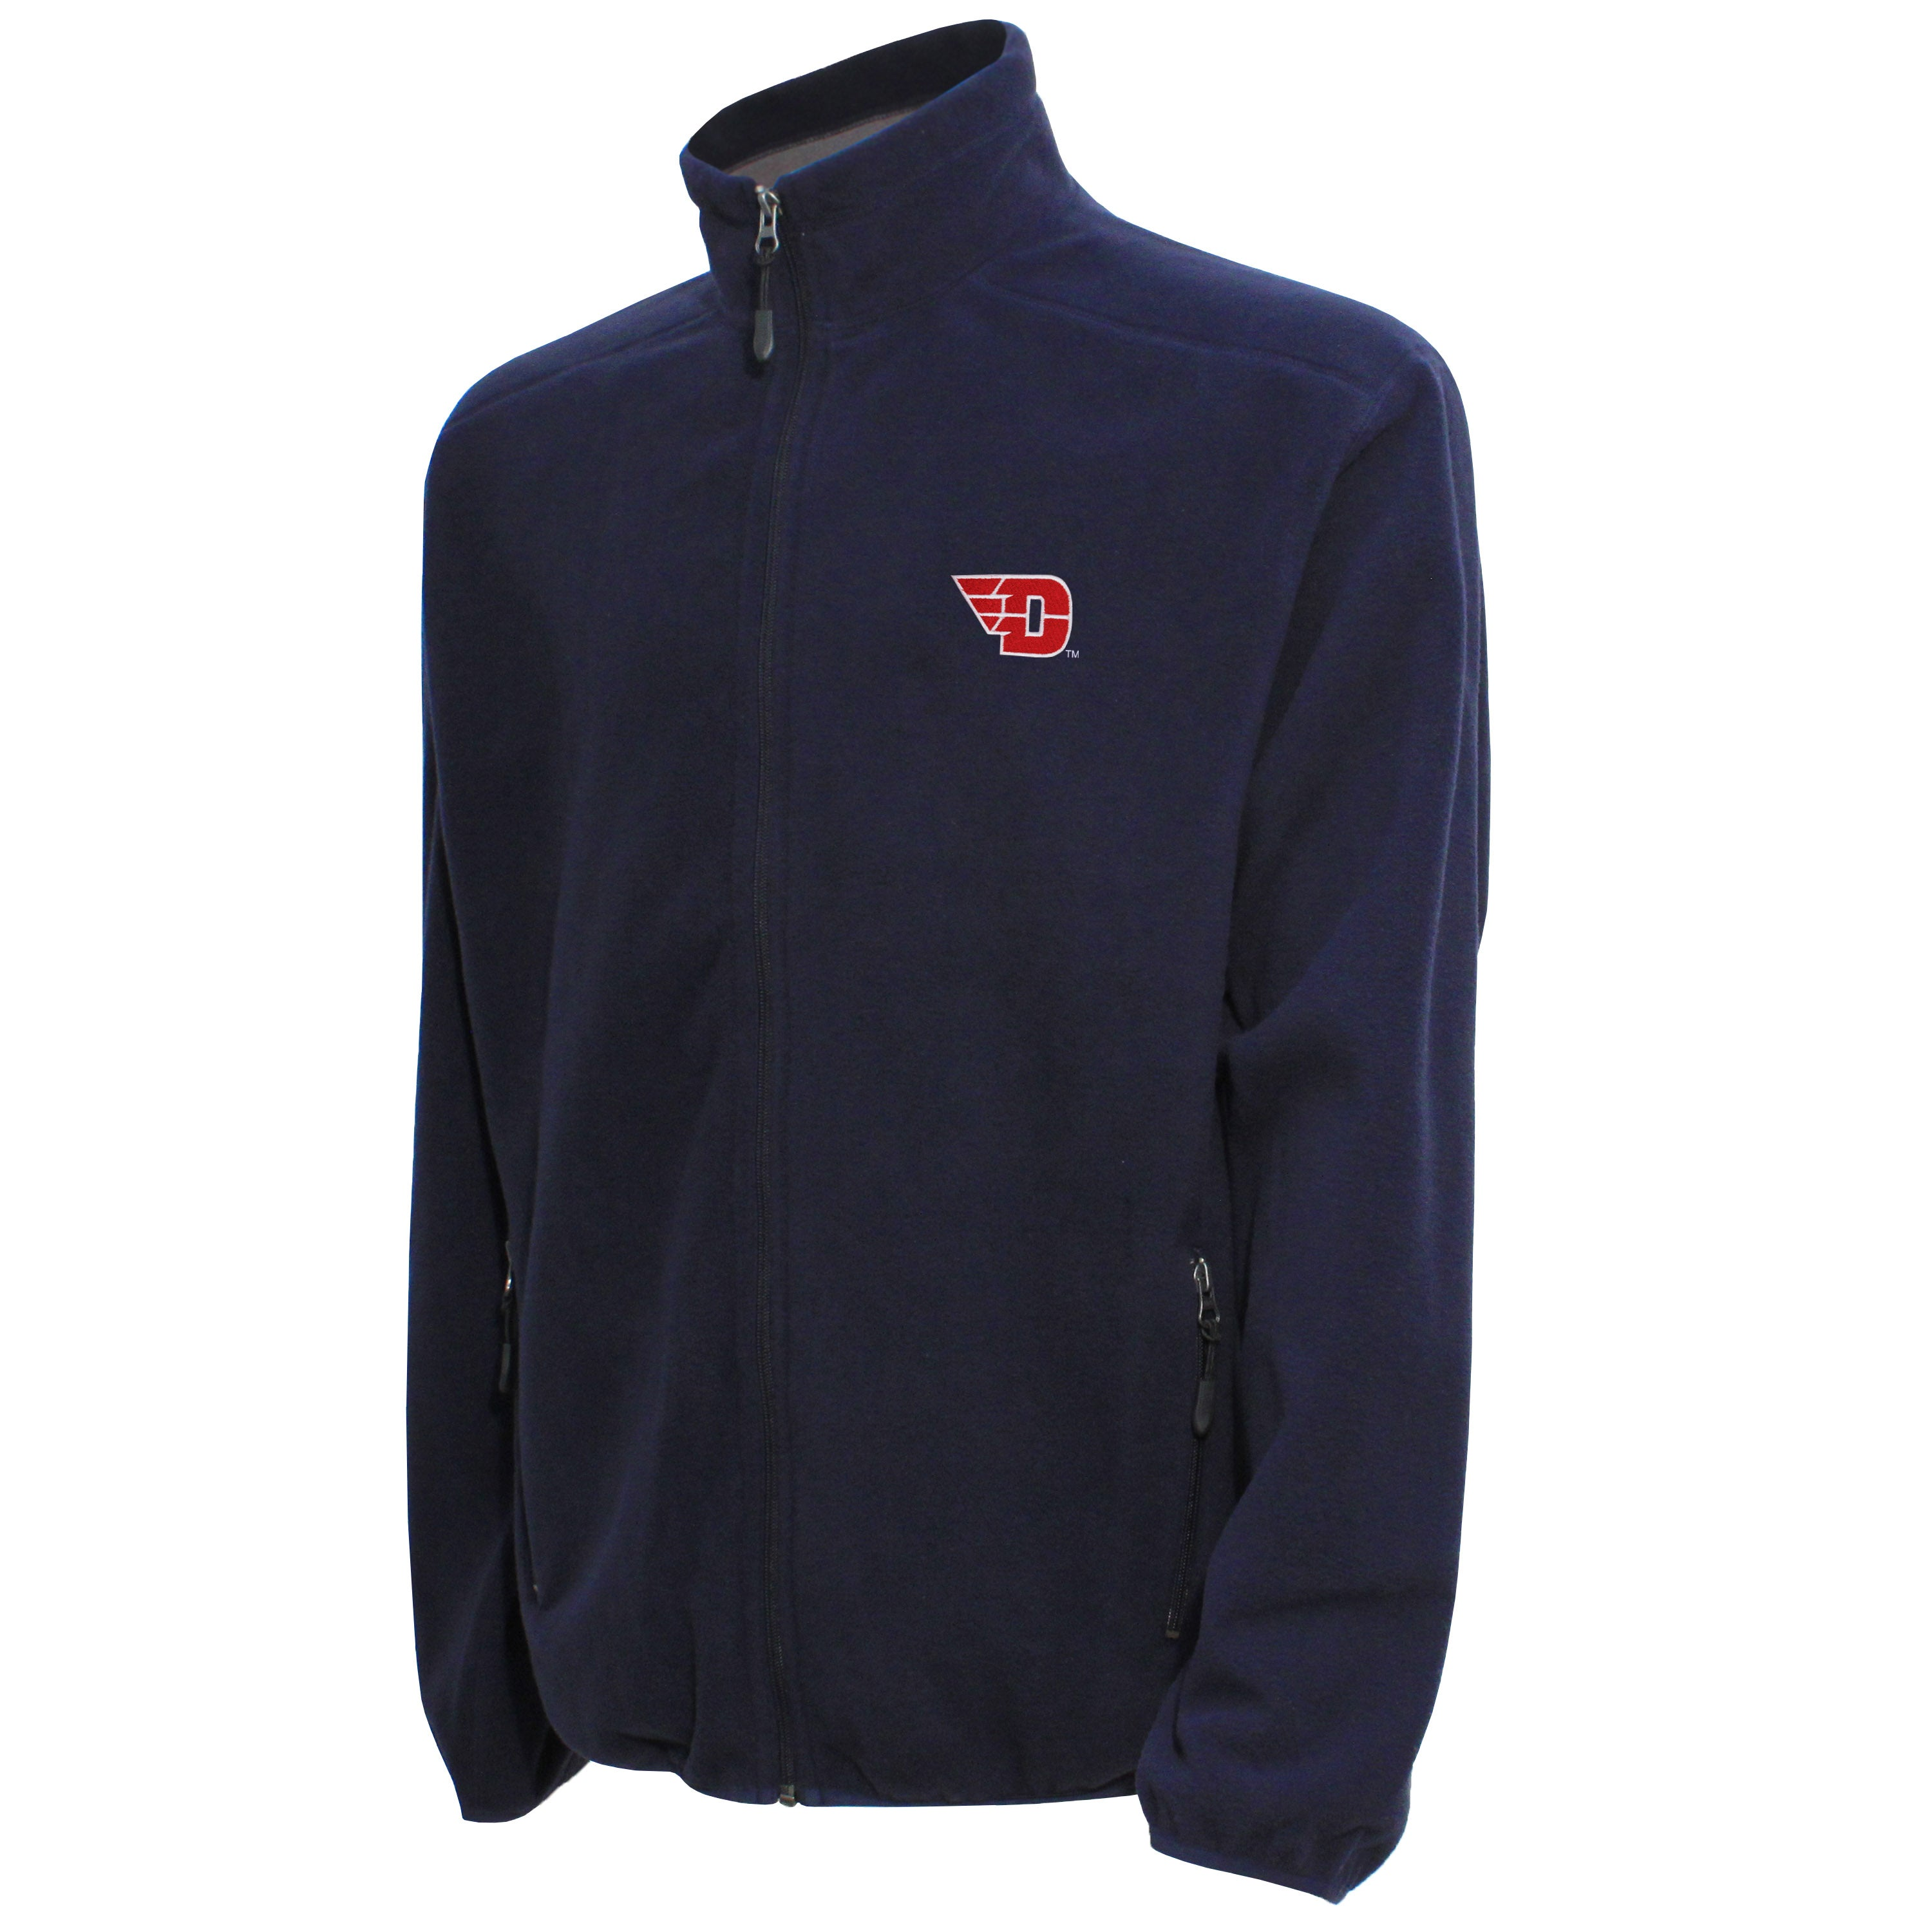 Vesi Dayton Men's Navy Full Zip Jacket